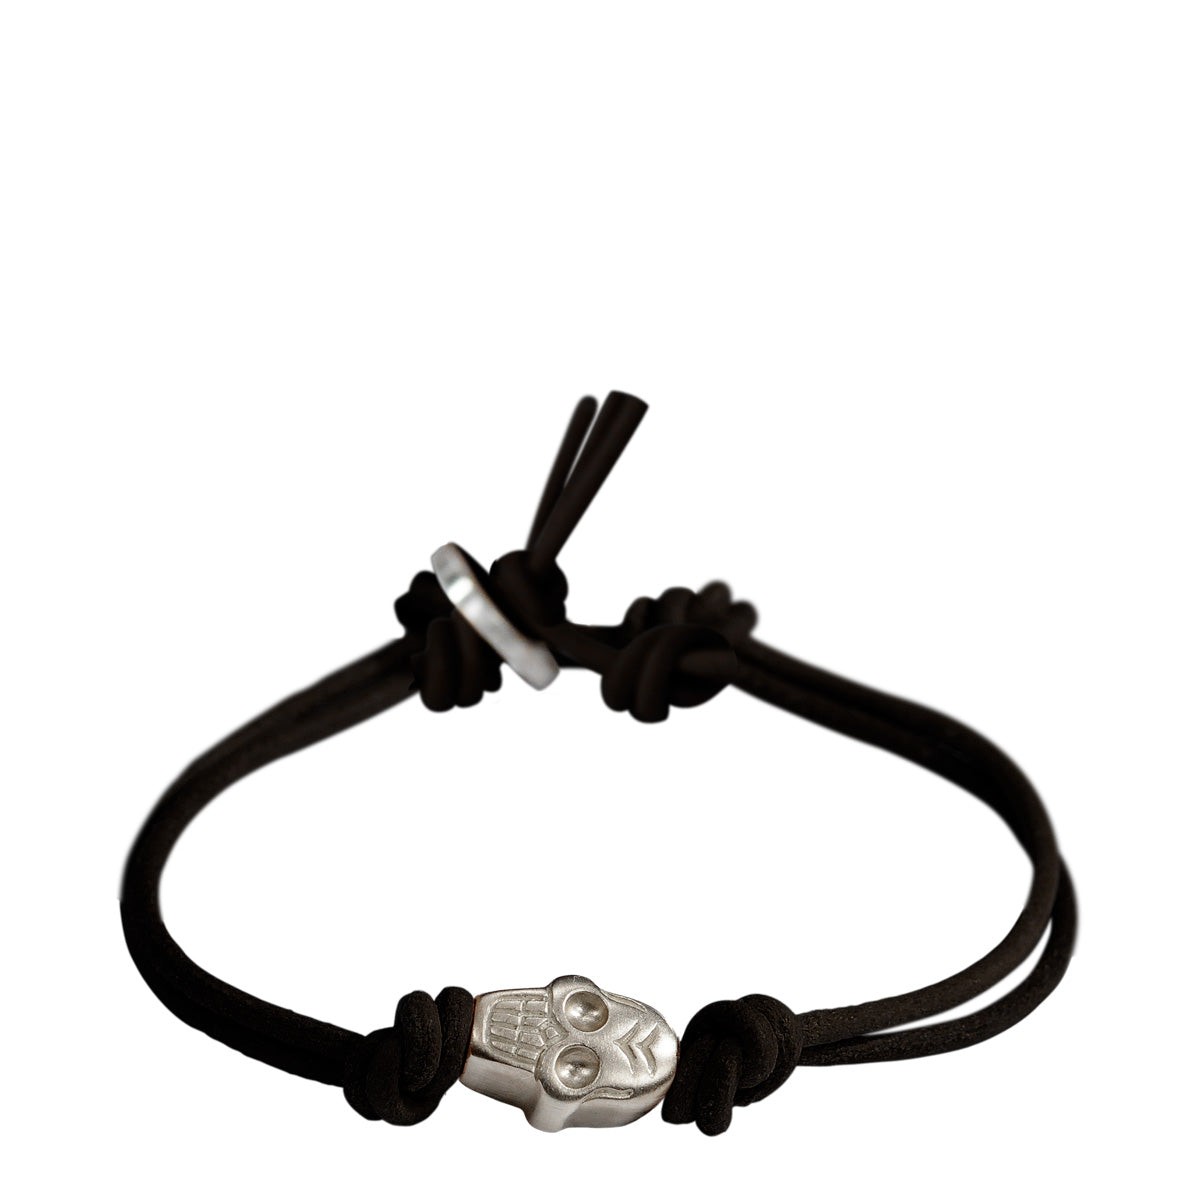 Men's Sterling Silver Single Large Skull Bracelet on Black Leather Cord with Button Closure